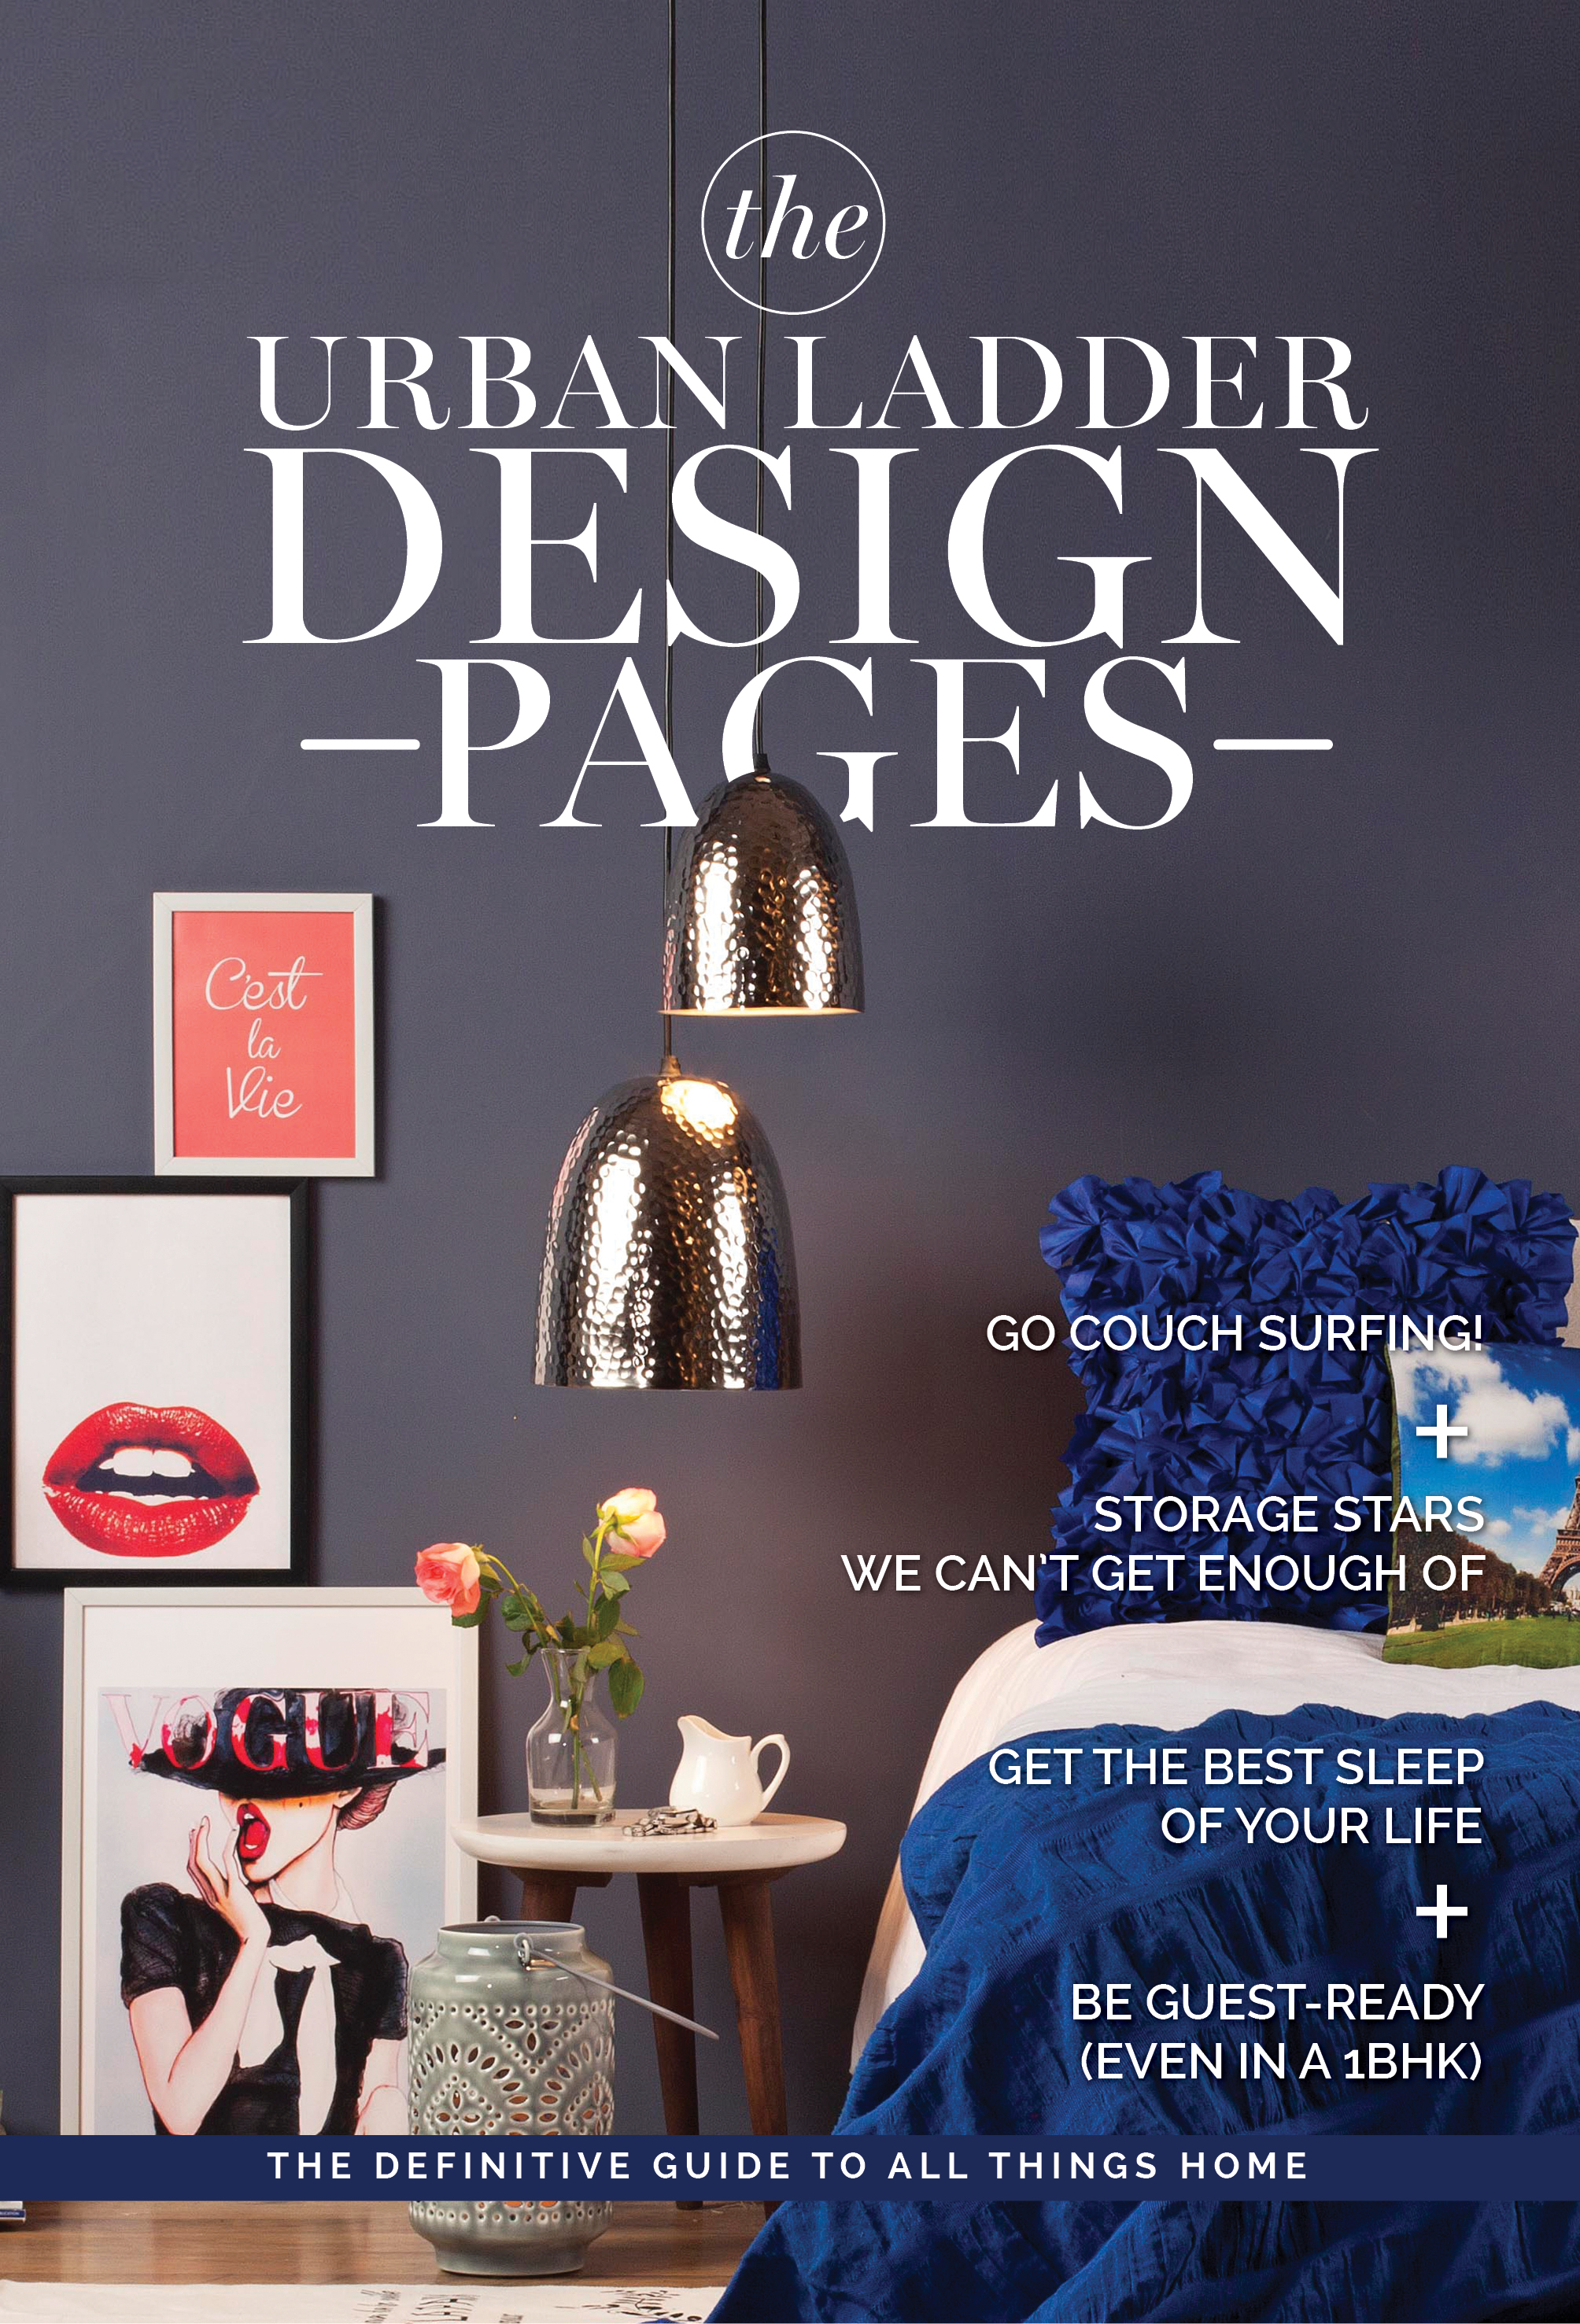 Design Pages